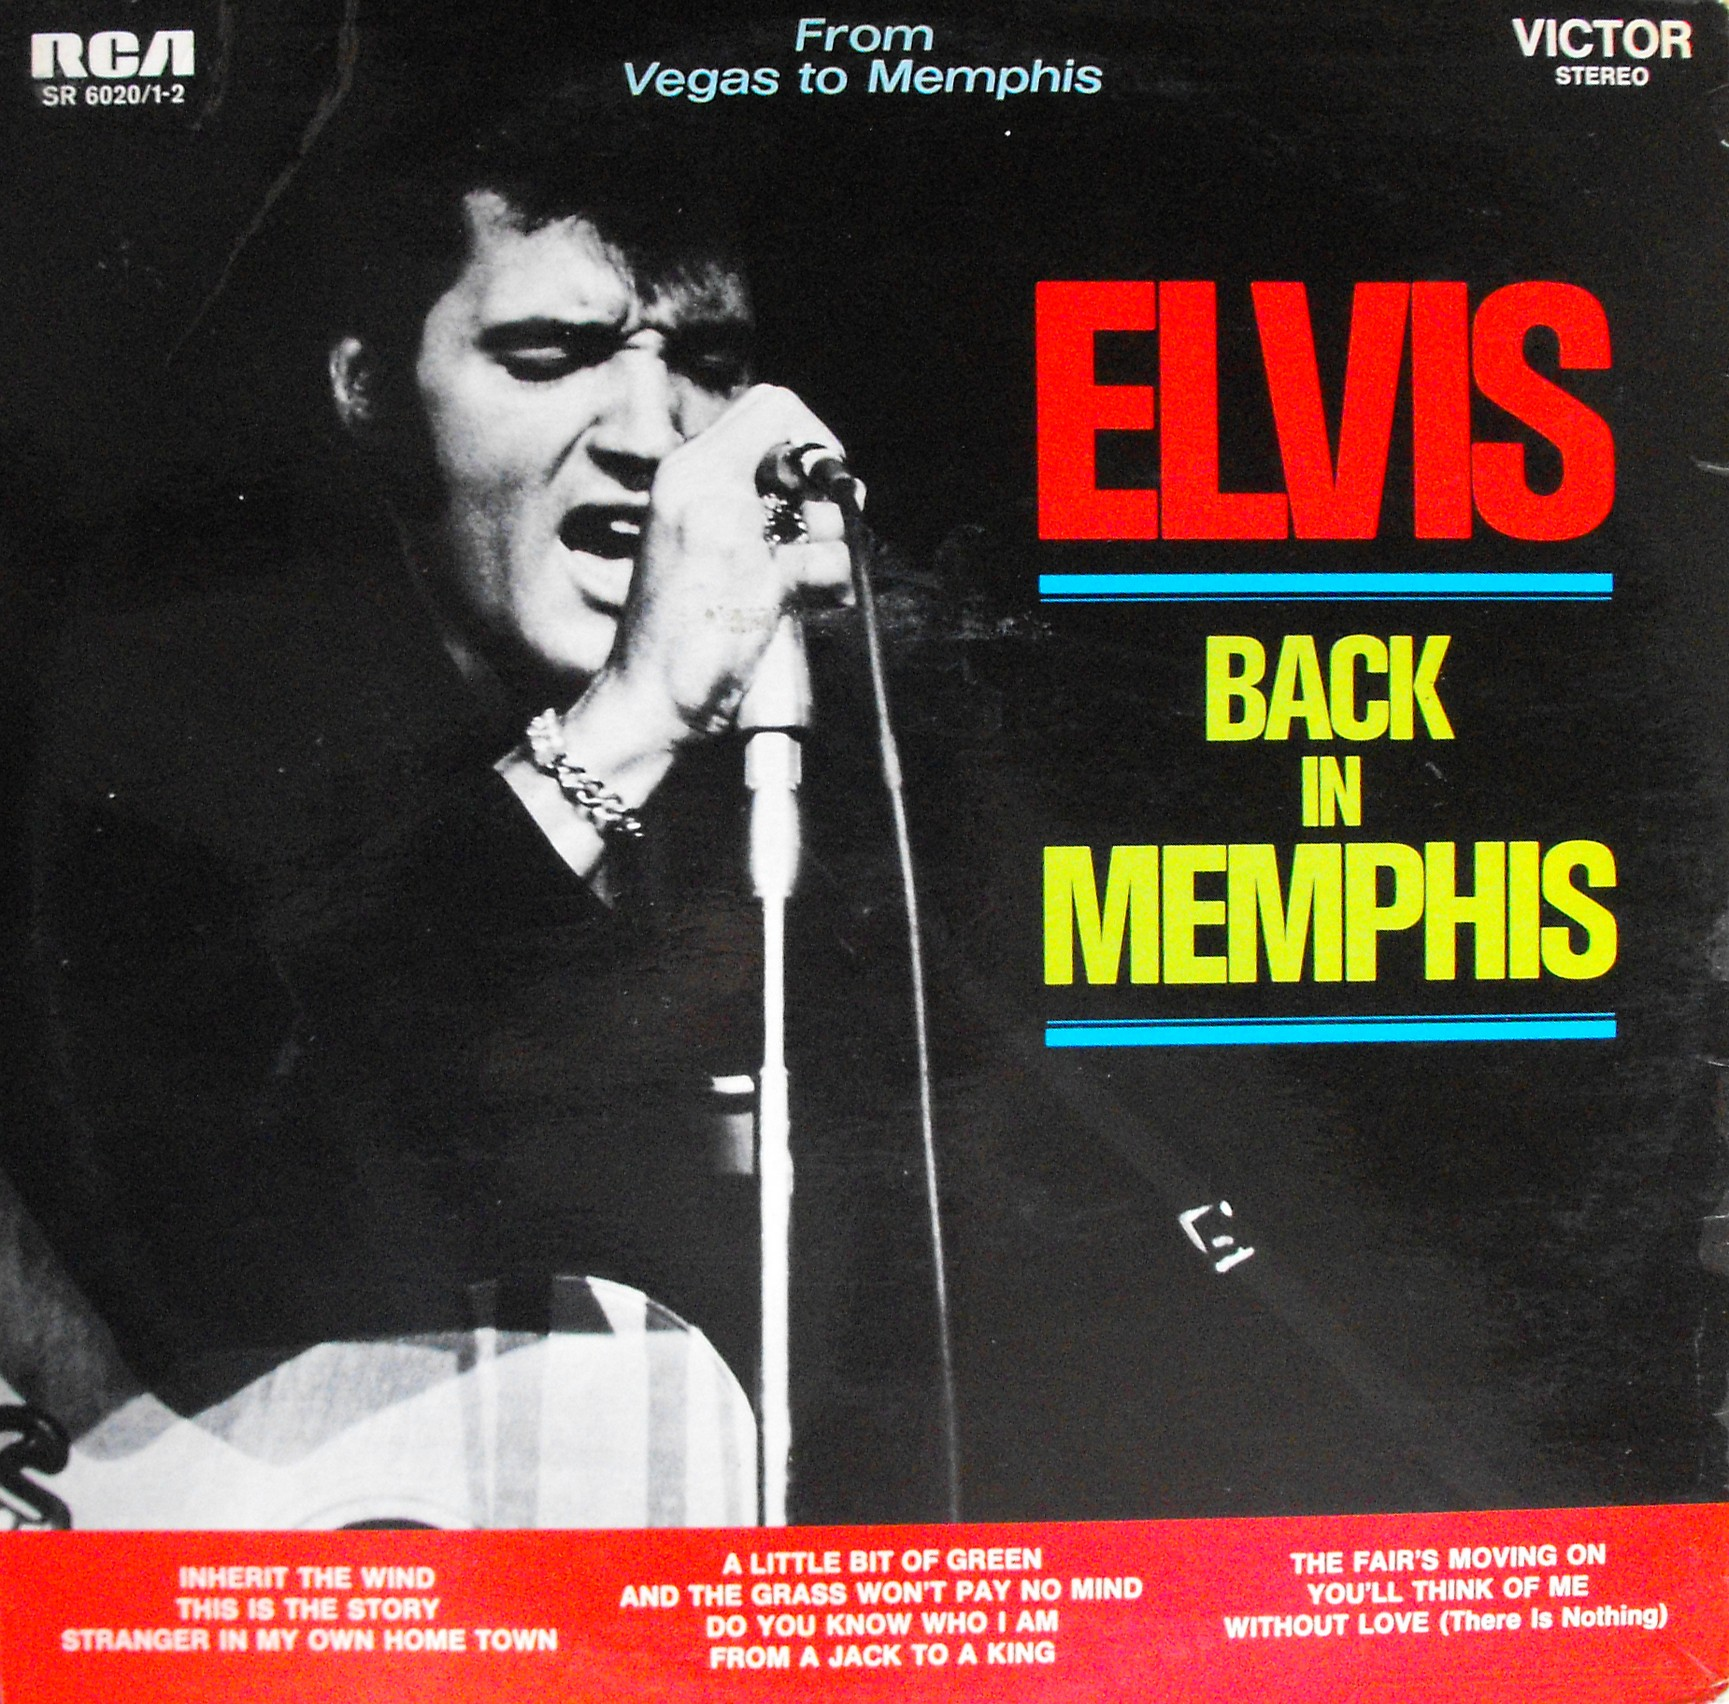 FROM MEMPHIS TO VEGAS / FROM VEGAS TO MEMPHIS Fmtvbackdsurs